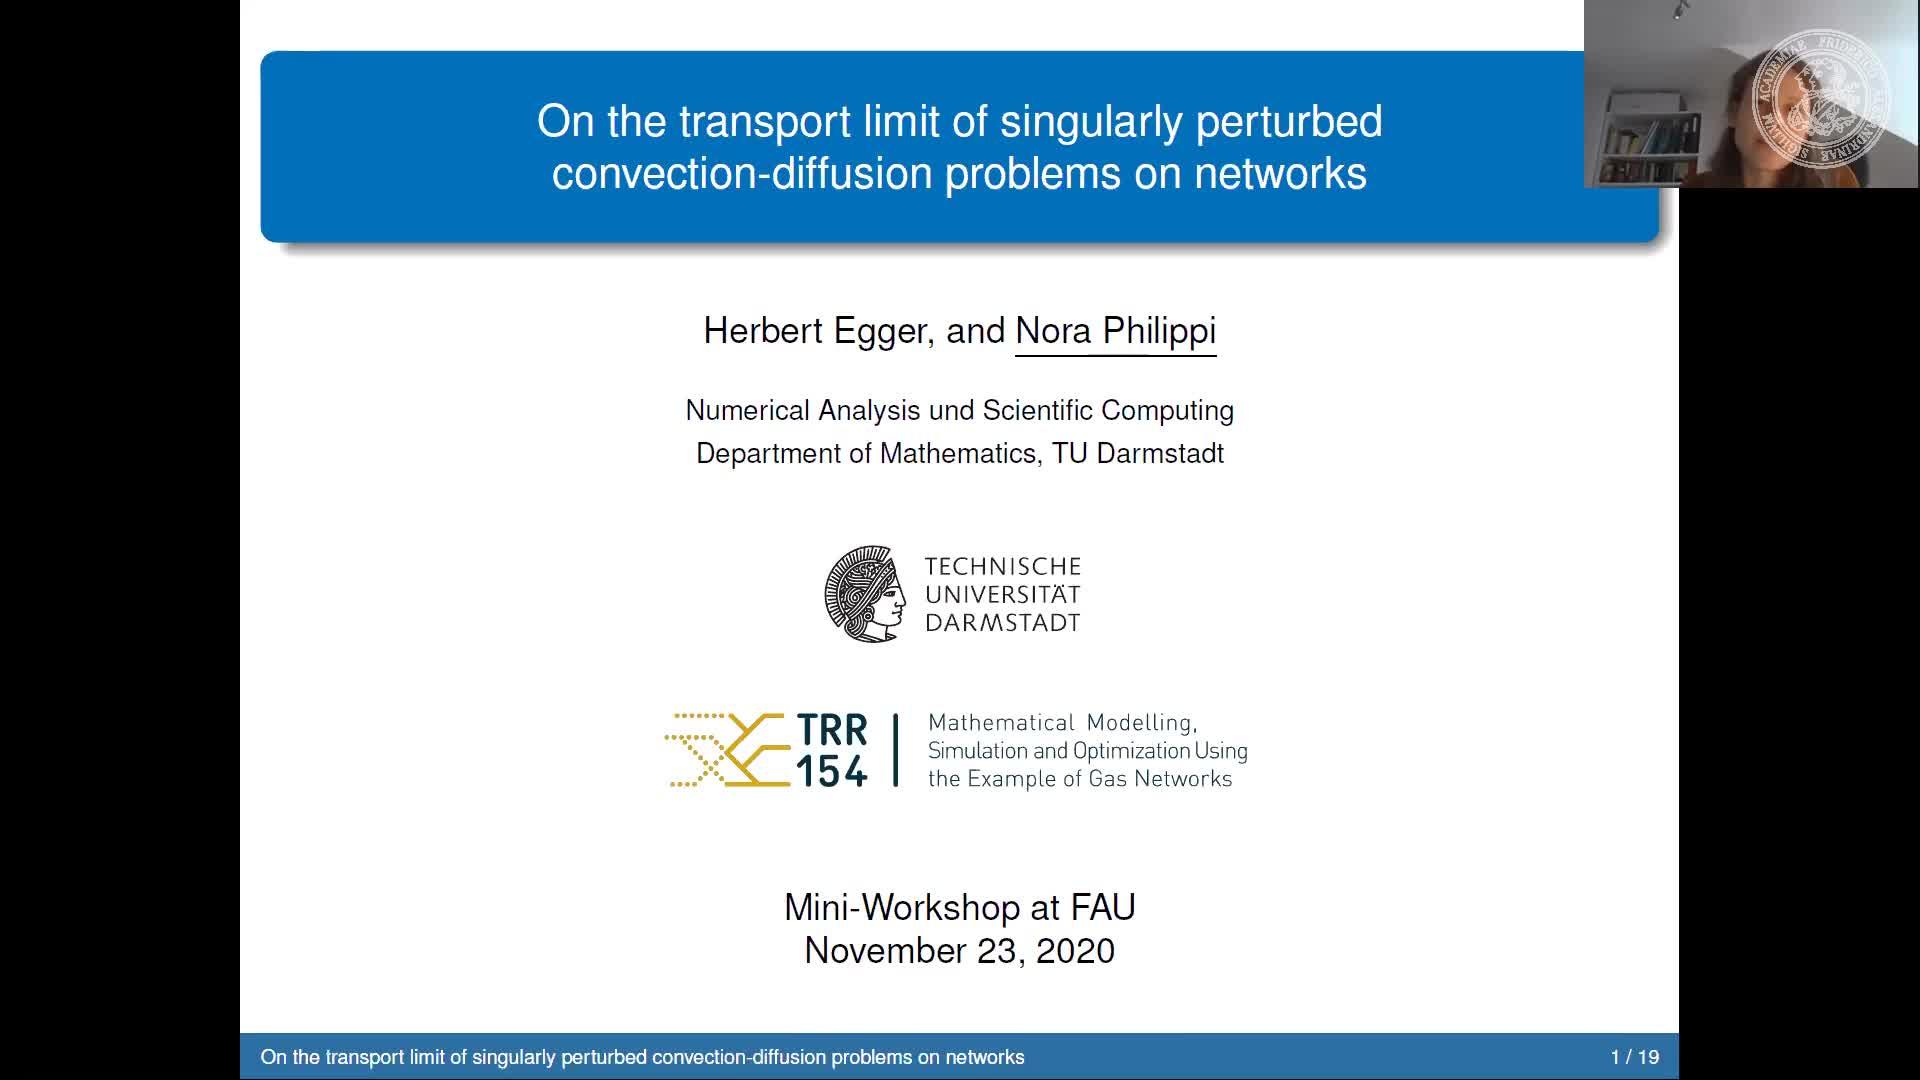 On the transport limit of singularly perturbed convection-diffusion problems on networks (Nora Marie Philippi, TU Damstadt) preview image